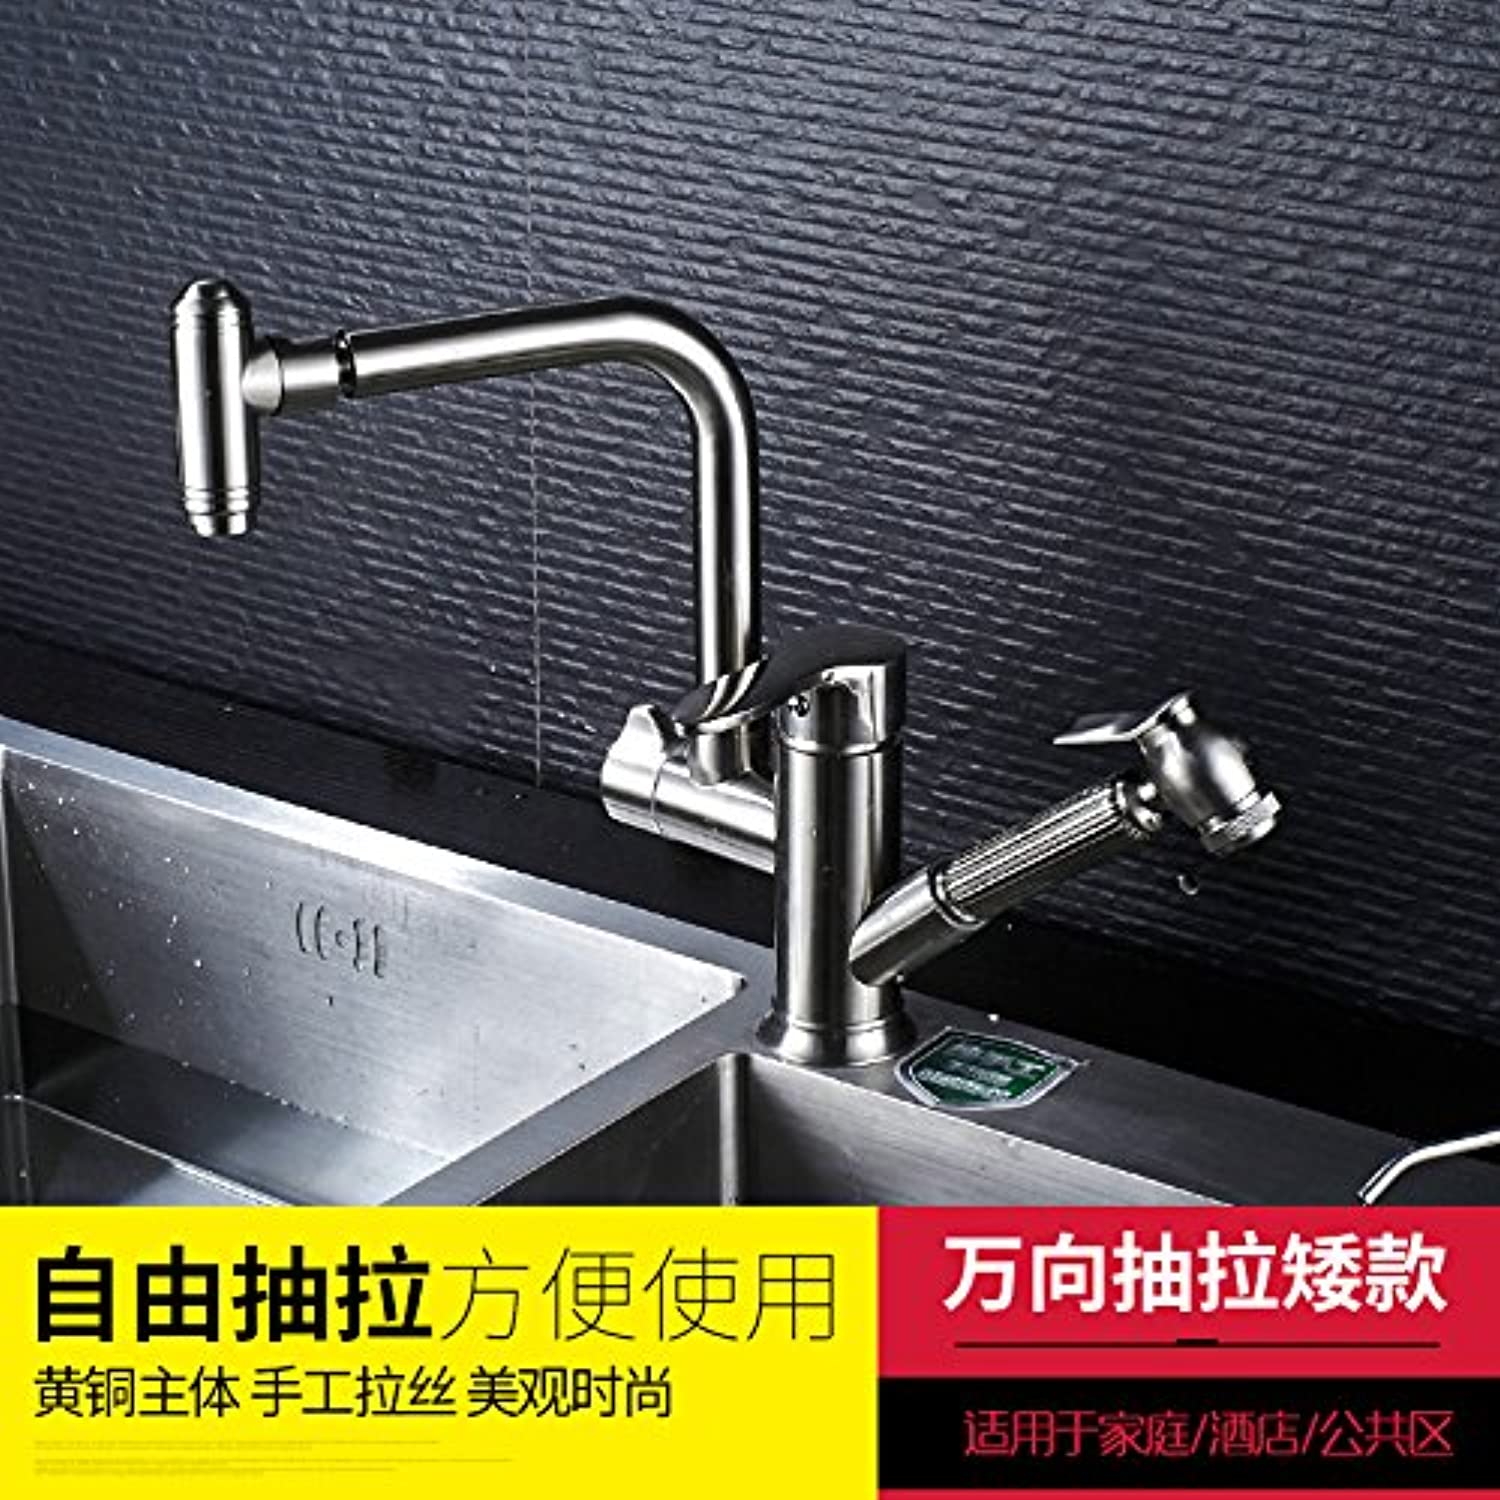 Lpophy Bathroom Sink Mixer Taps Faucet Bath Waterfall Cold and Hot Water Tap for Washroom Bathroom and Kitchen Copper Pulling Hot and Cold redating A